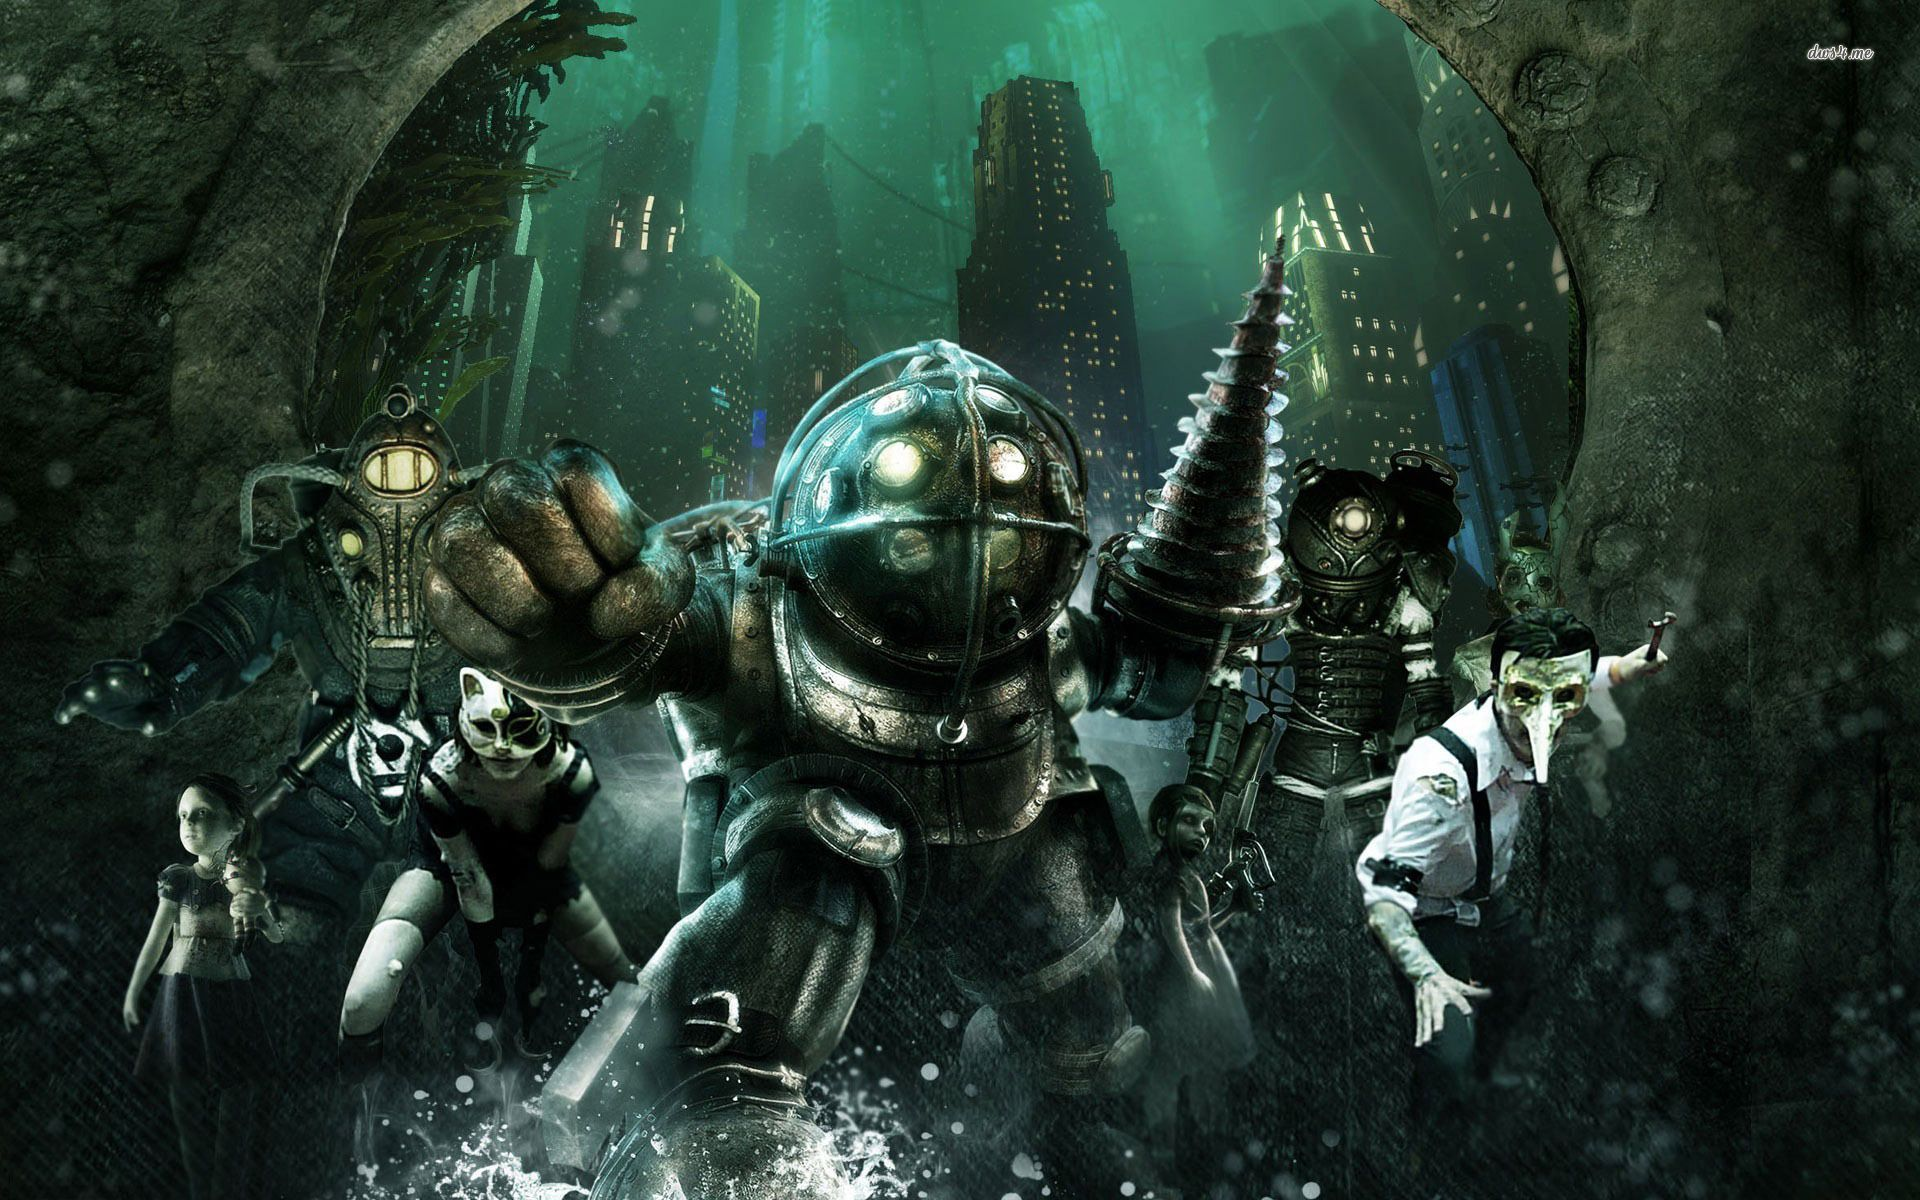 Bioshock Wallpaper 8 Desktop